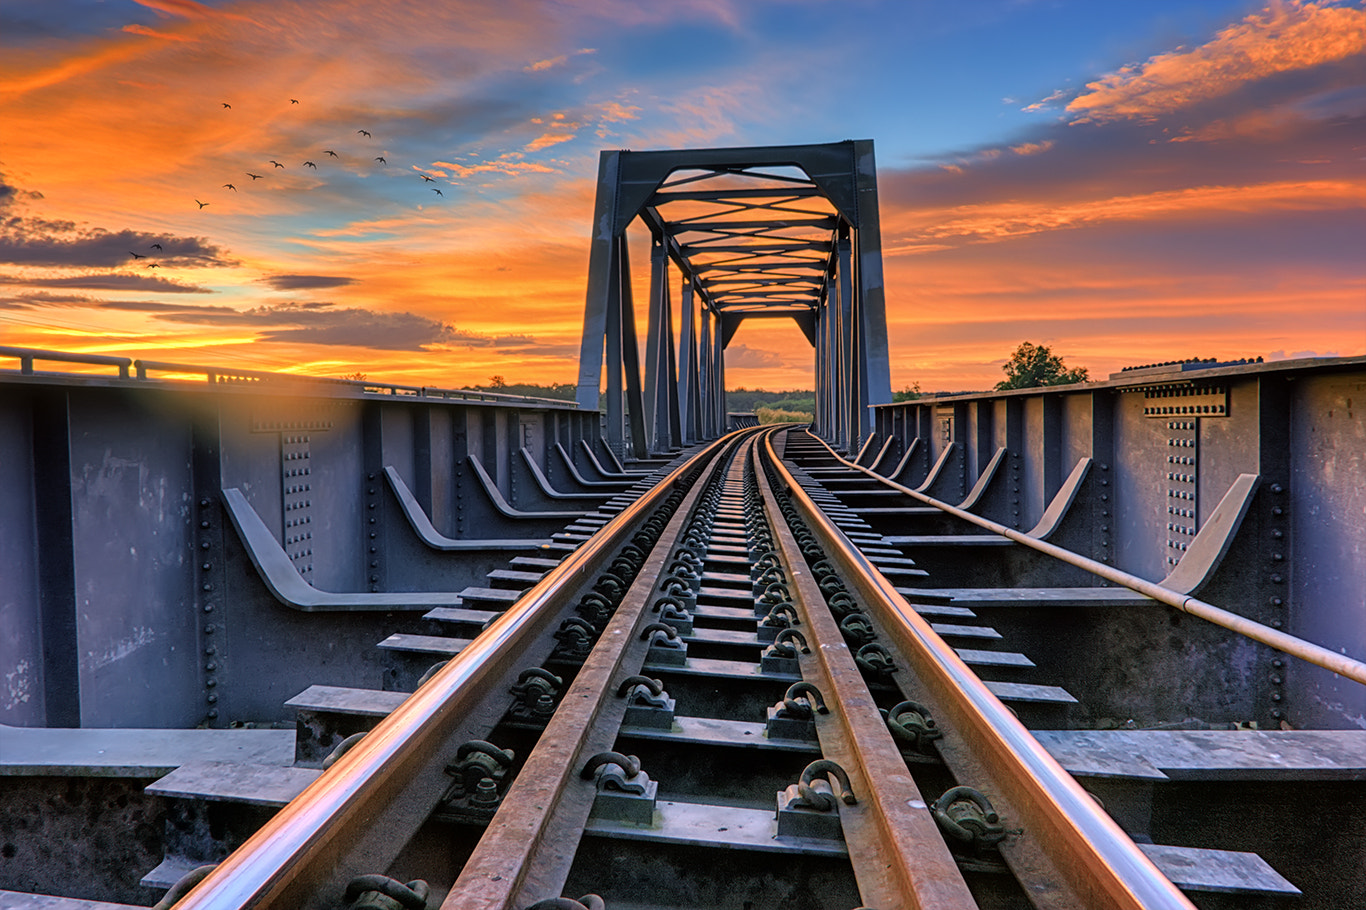 Photograph Bridging The Gap by Edson Reyes on 500px